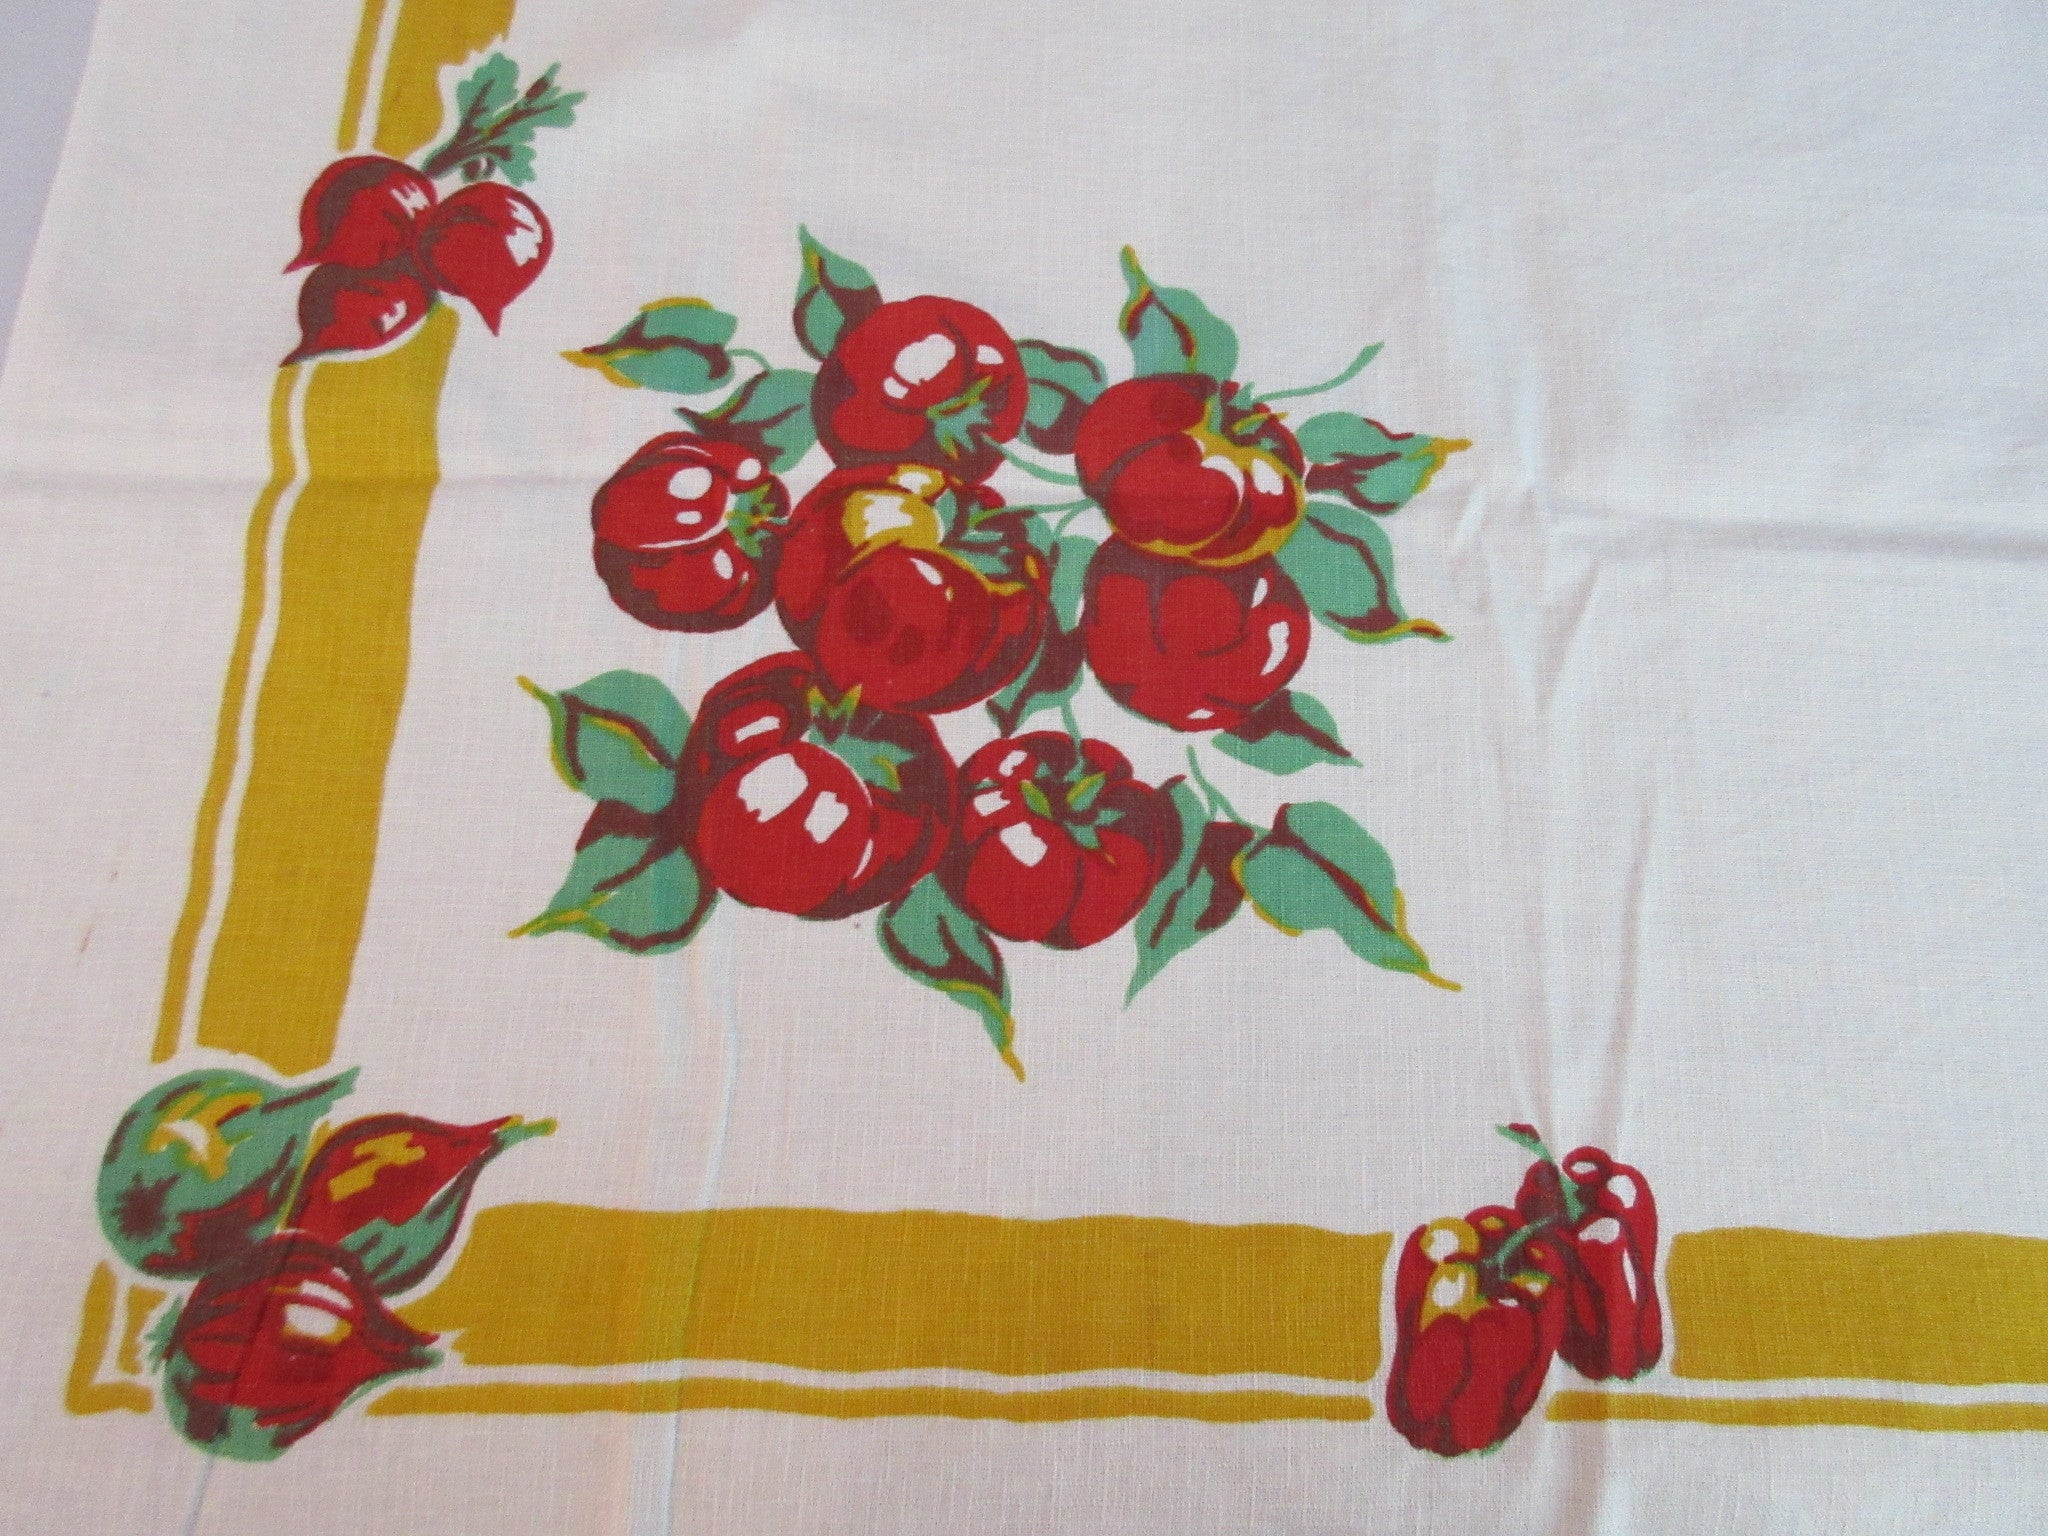 Fall Autumn Early Vegetables Victory Garden Vintage Printed Tablecloth (49 X 48)